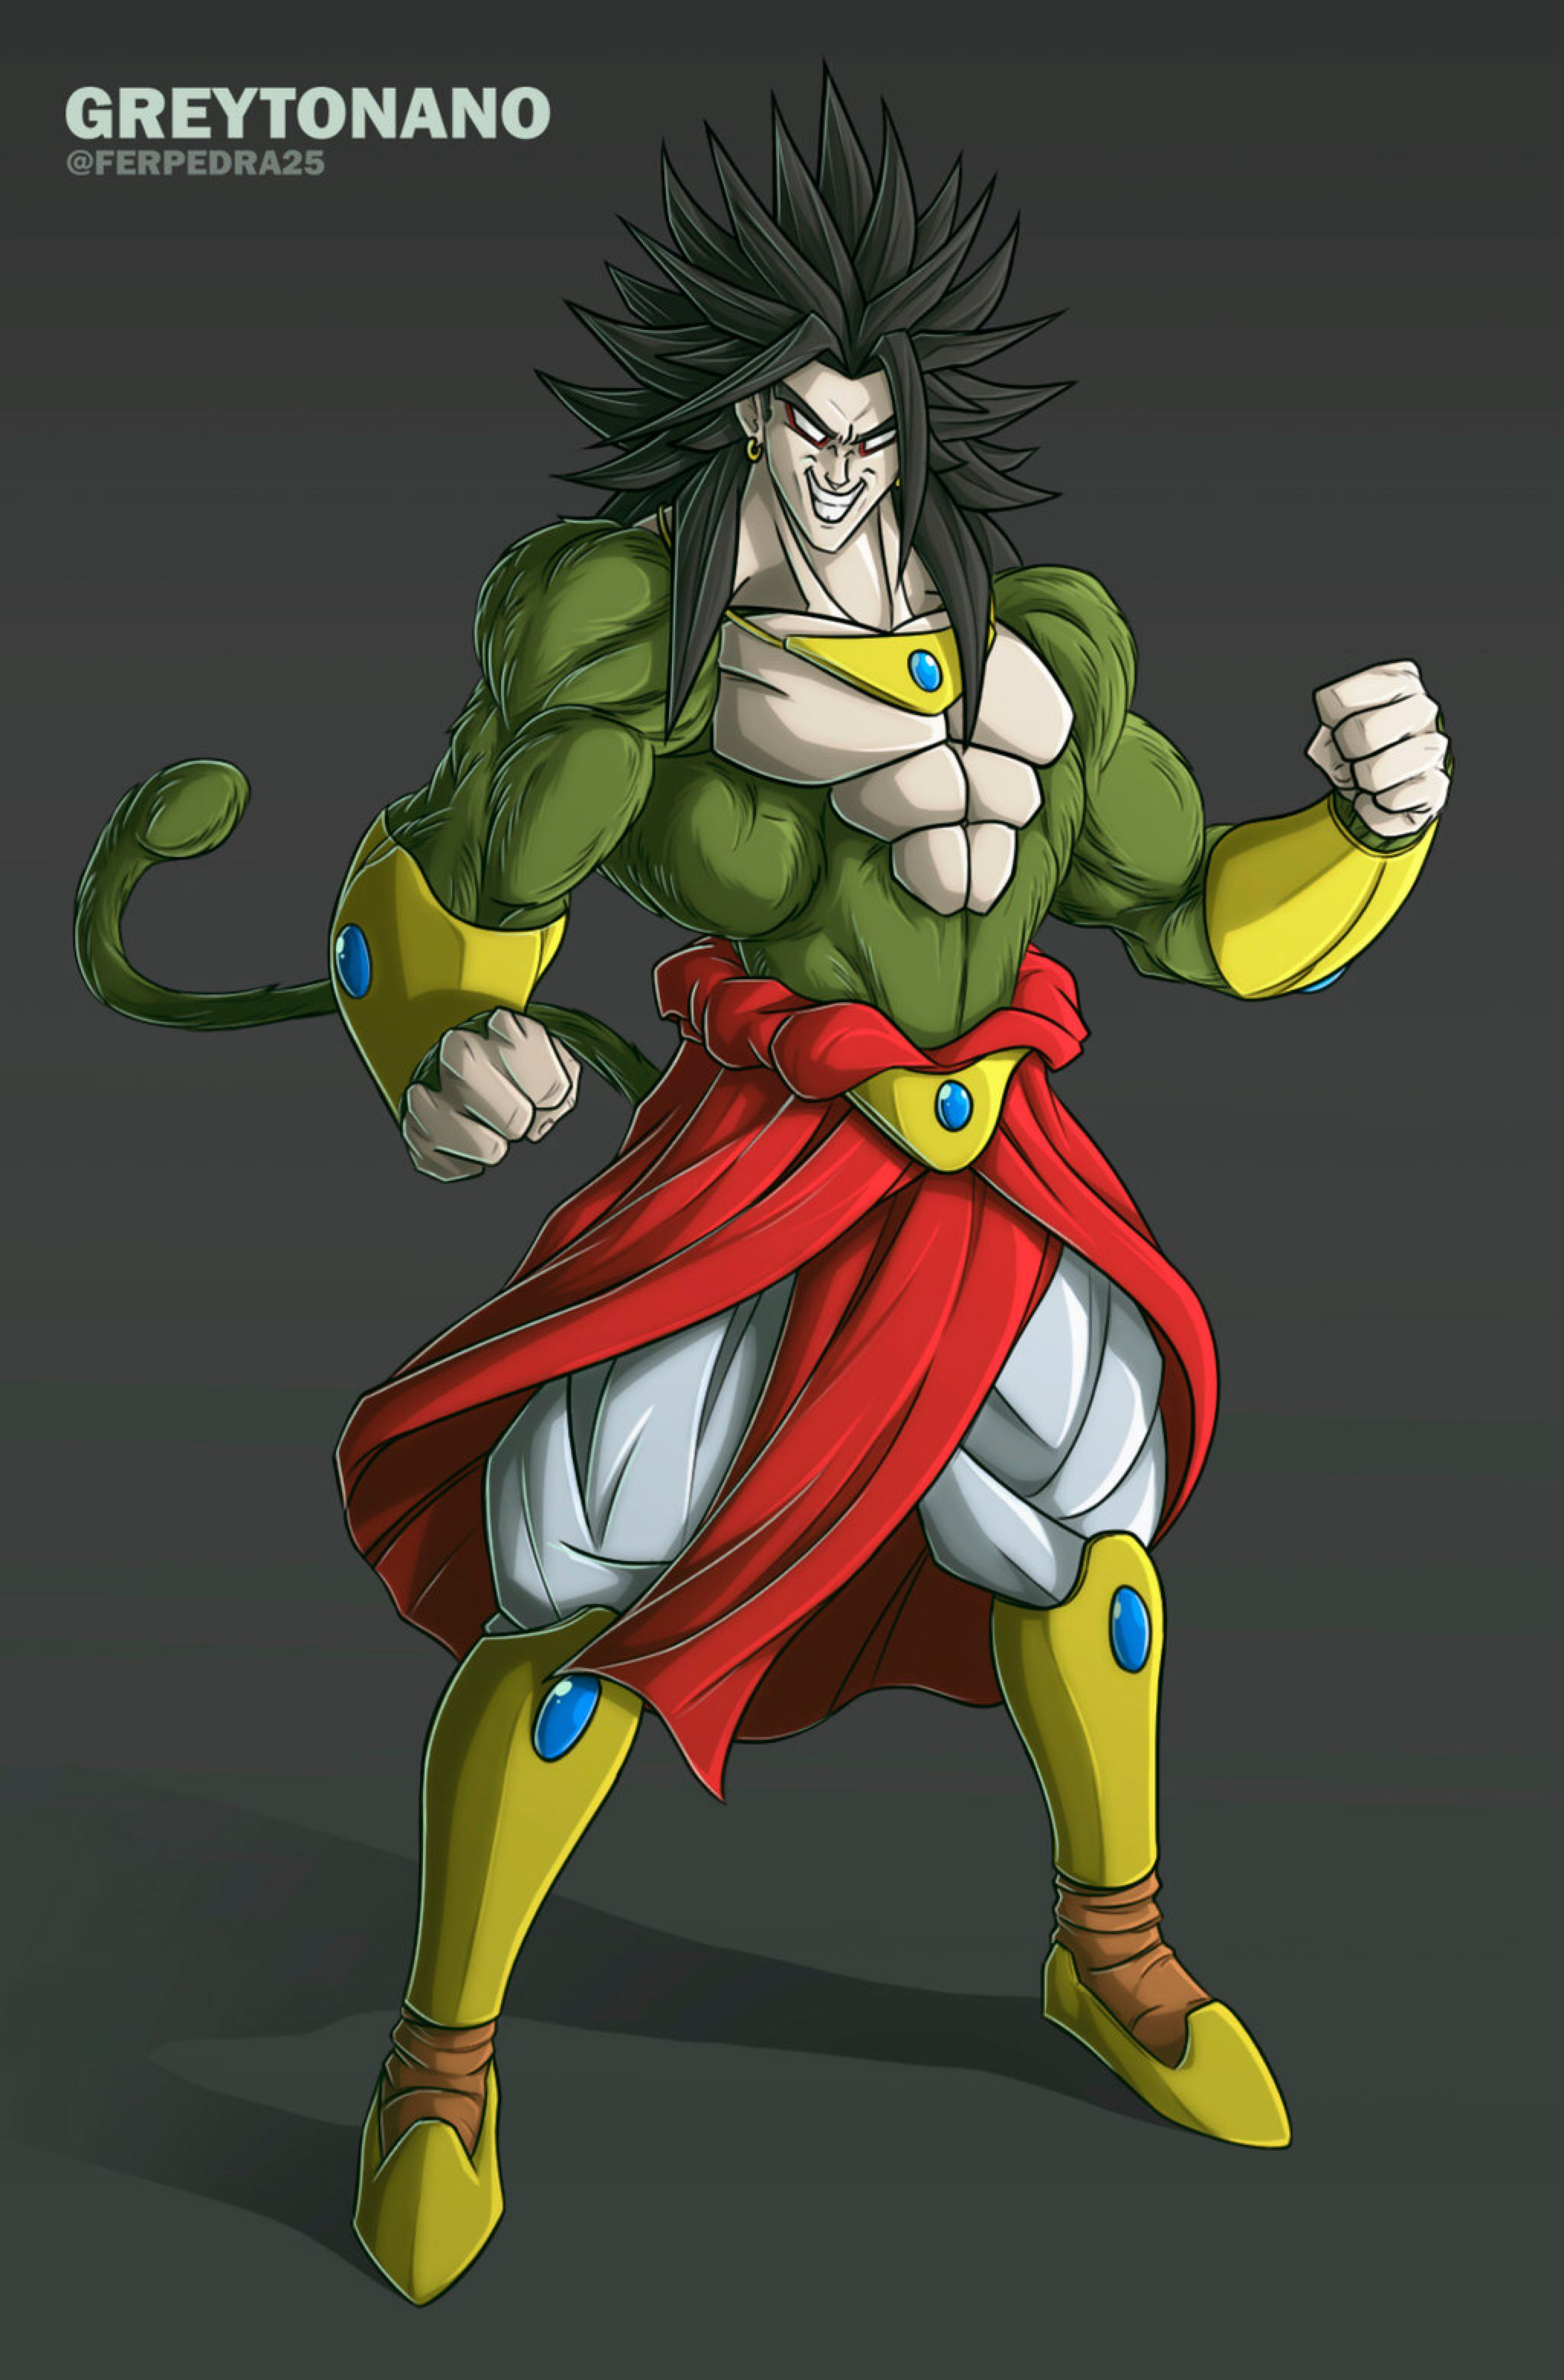 Broly ssj4 v2 by greytonano on deviantart stuff - Broly dragon ball gt ...